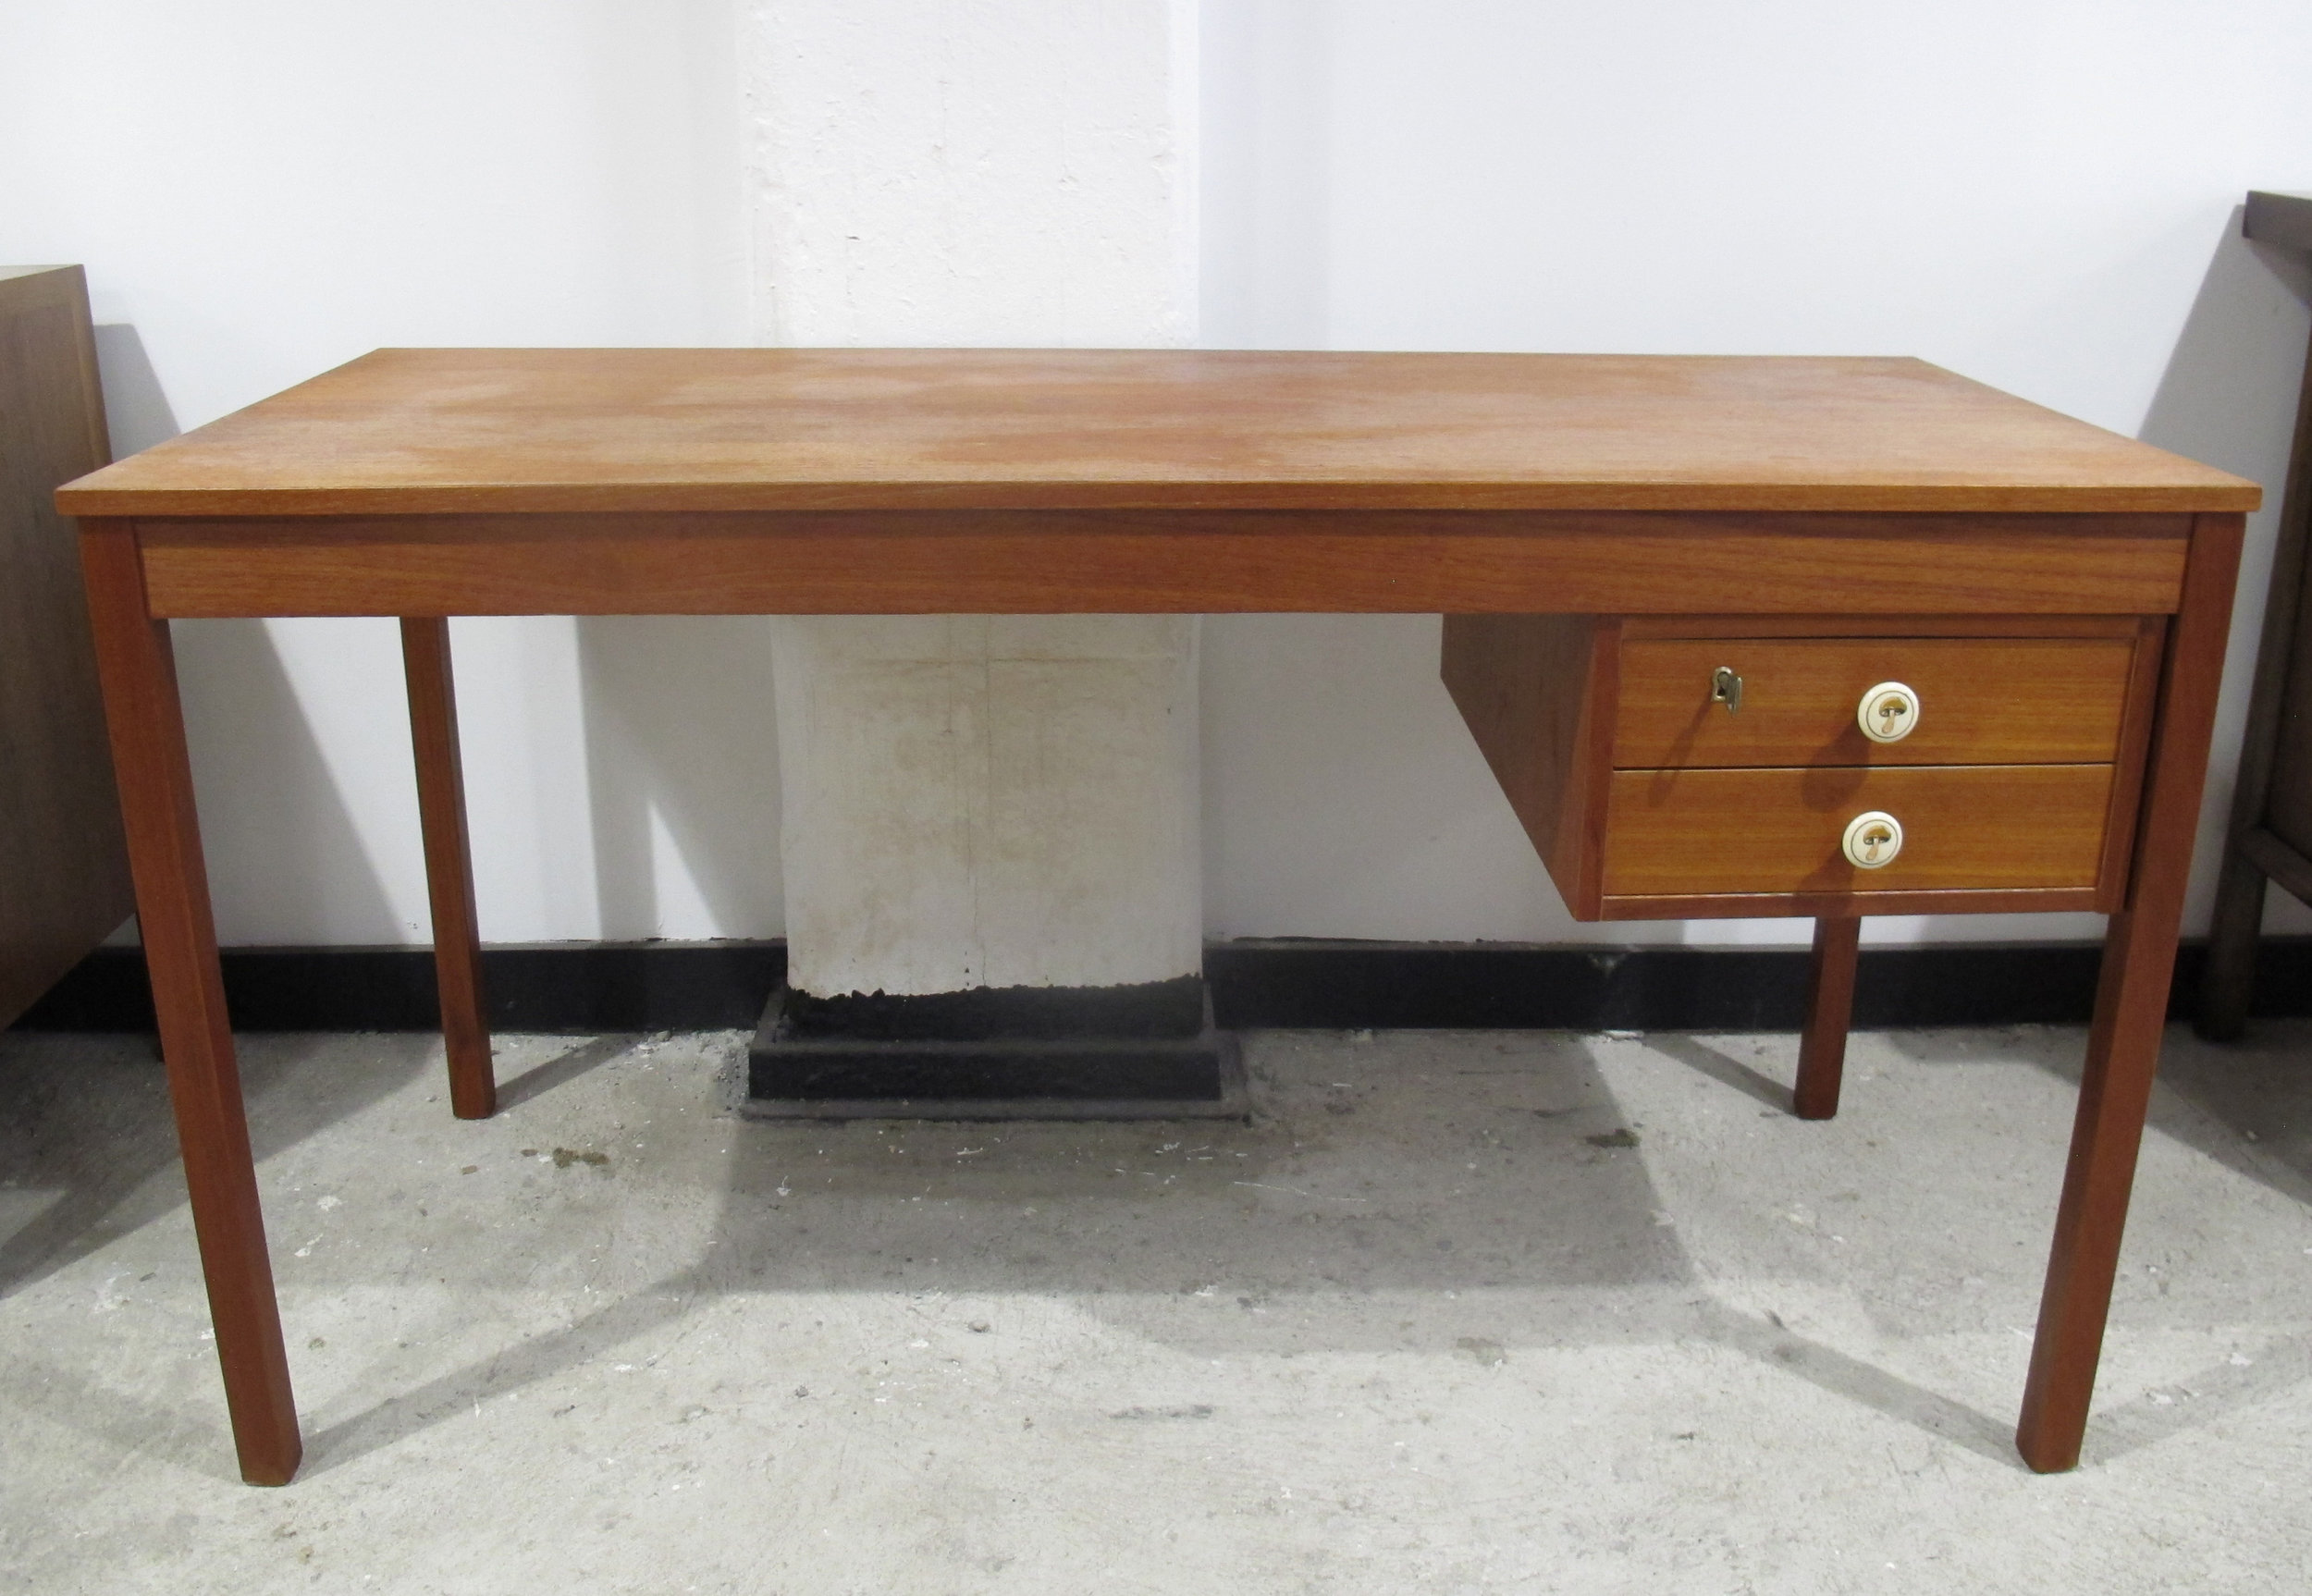 DANISH MODERN TEAK DESK BY DOMINO MOBLER